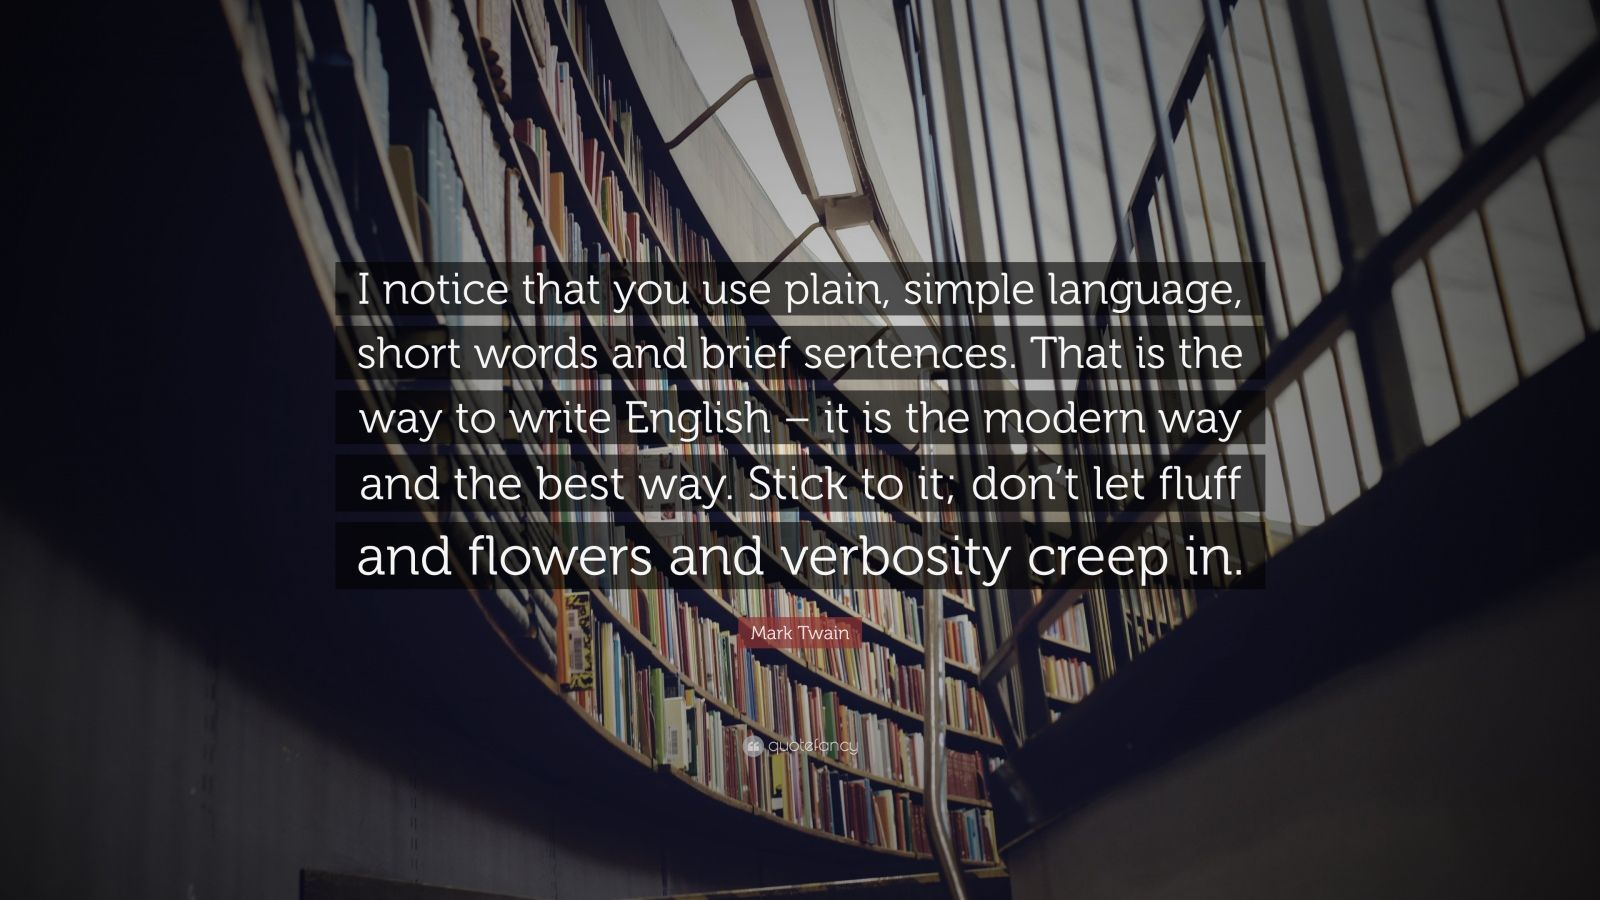 """Mark Twain Quote: """"I notice that you use plain, simple language, short words and brief sentences. That is the way to write English – it is the modern way and the best way. Stick to it; don't let fluff and flowers and verbosity creep in."""""""